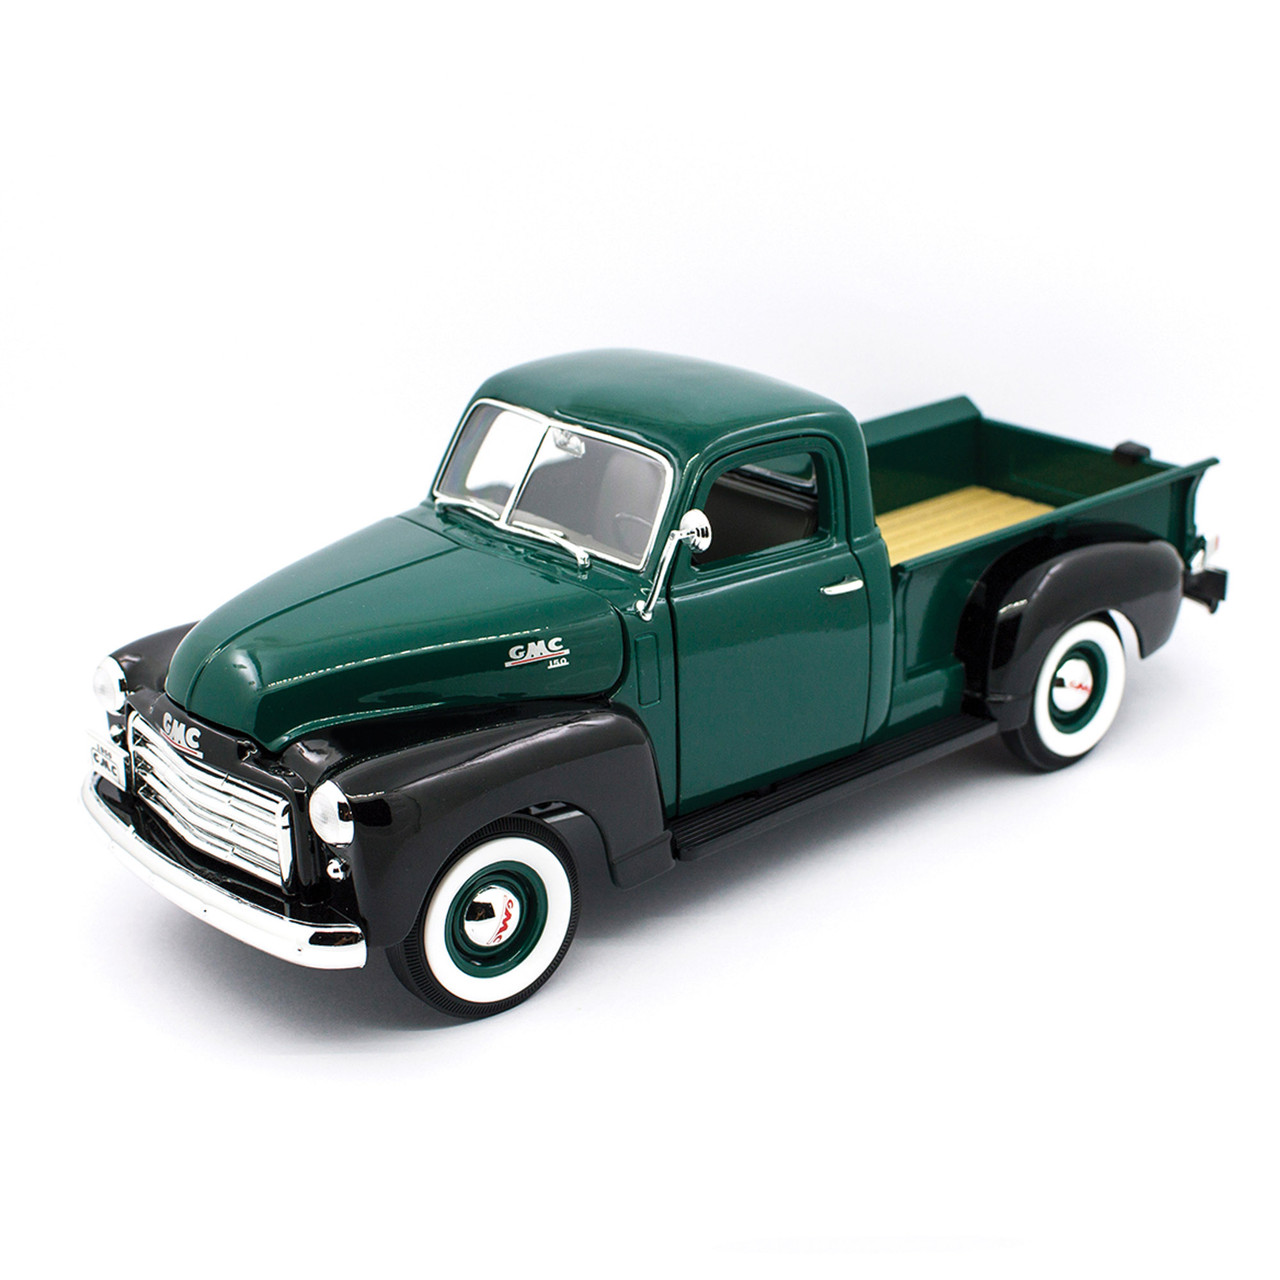 1950 Gmc Pickup 1 18 Scale Diecast Model By Road Signature Collectable Diecast